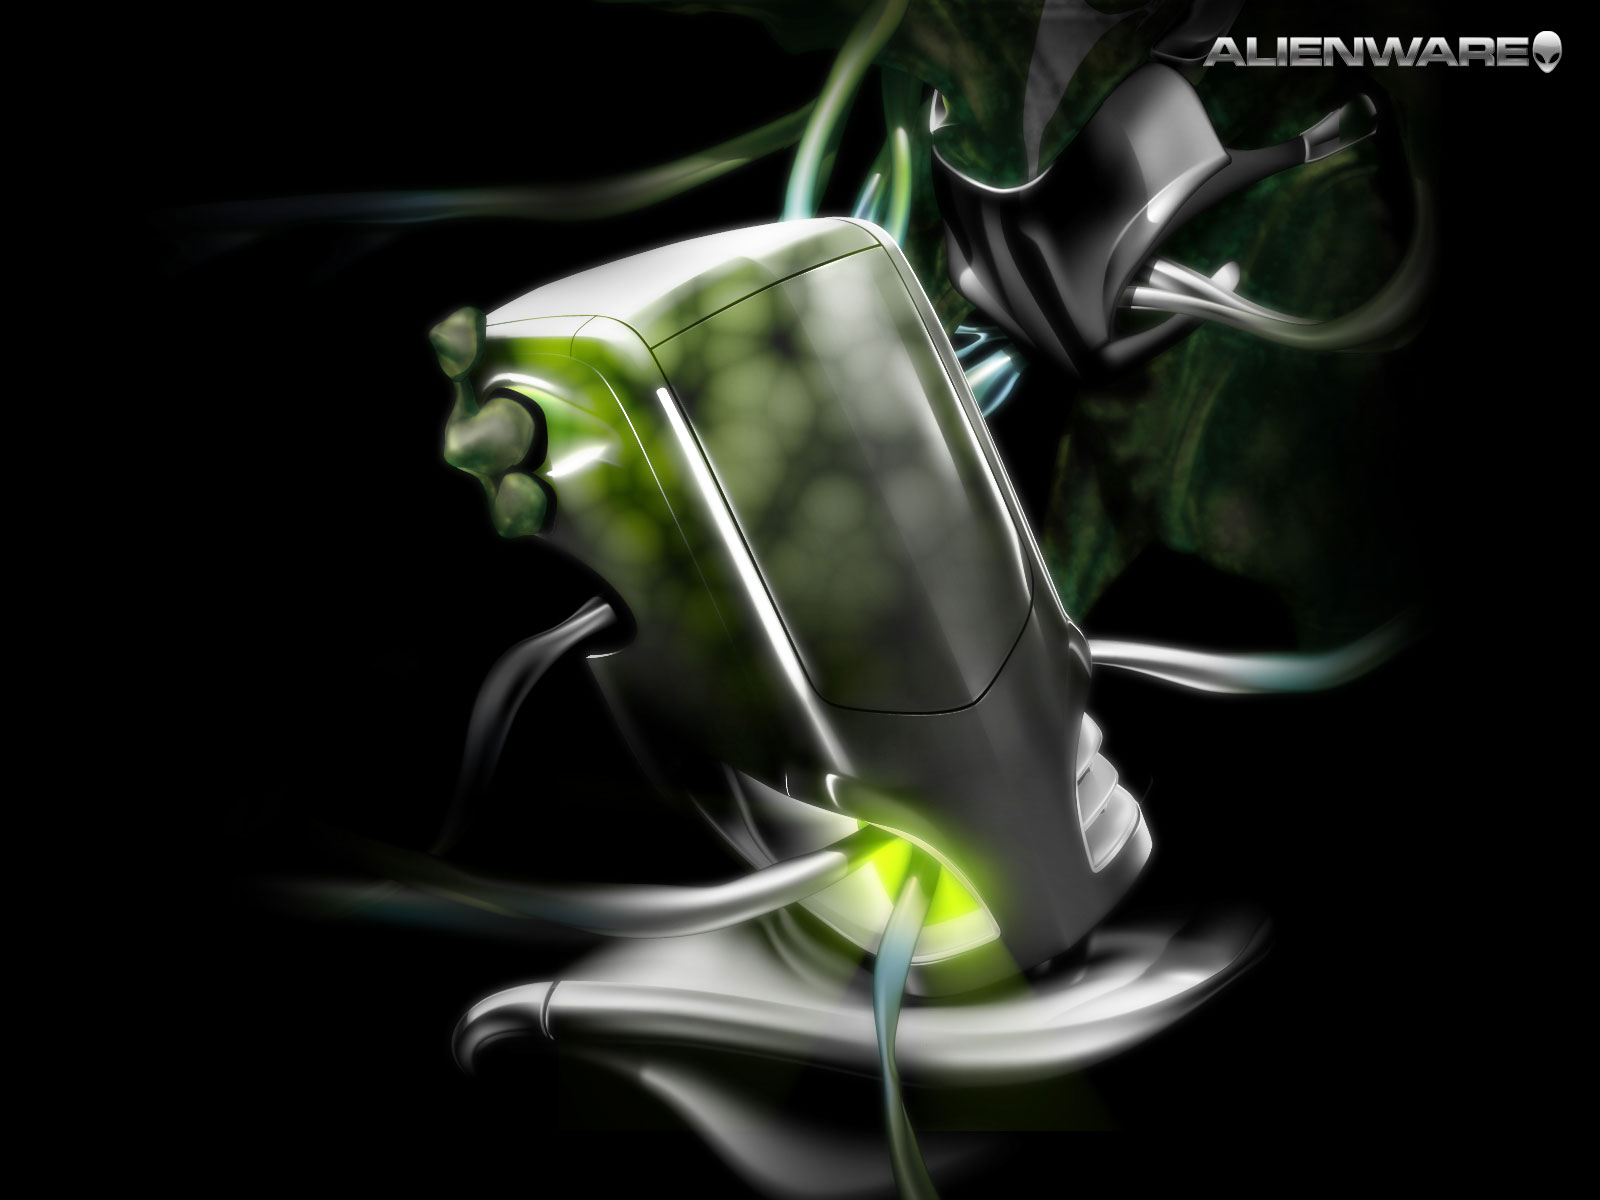 Alienware PC Wallpapers (1)